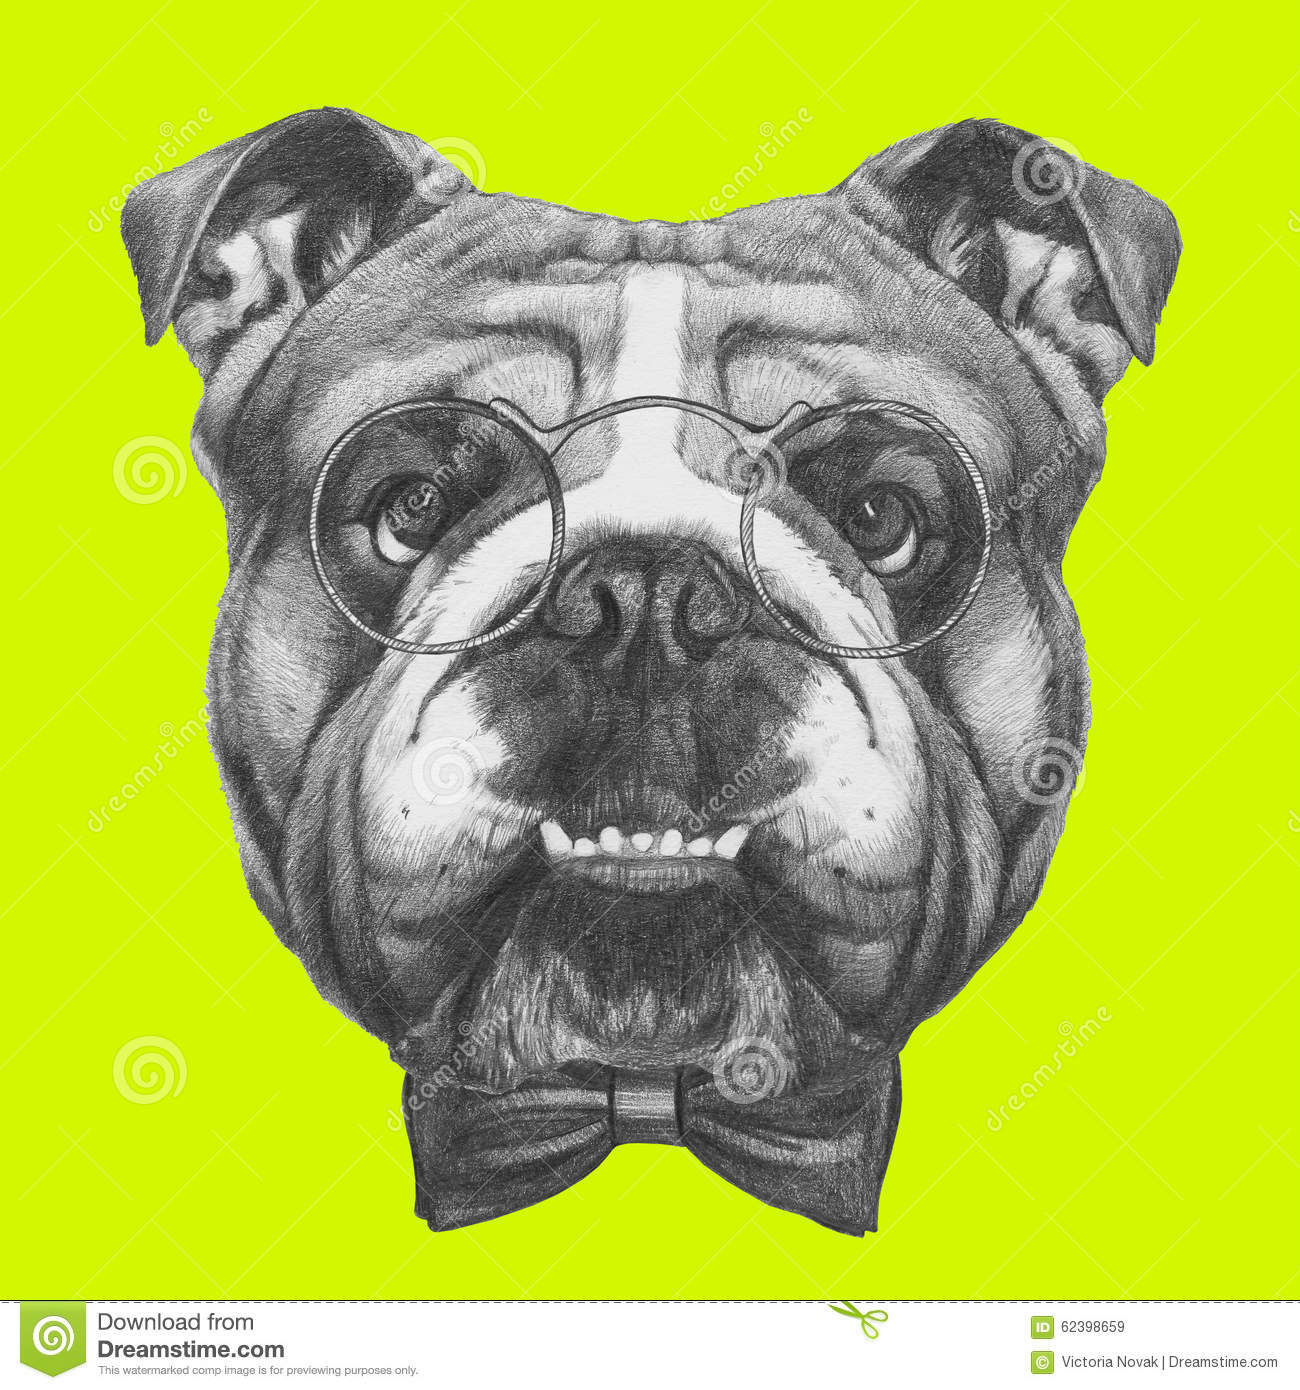 original drawing of english bulldog with glasses and bow tie